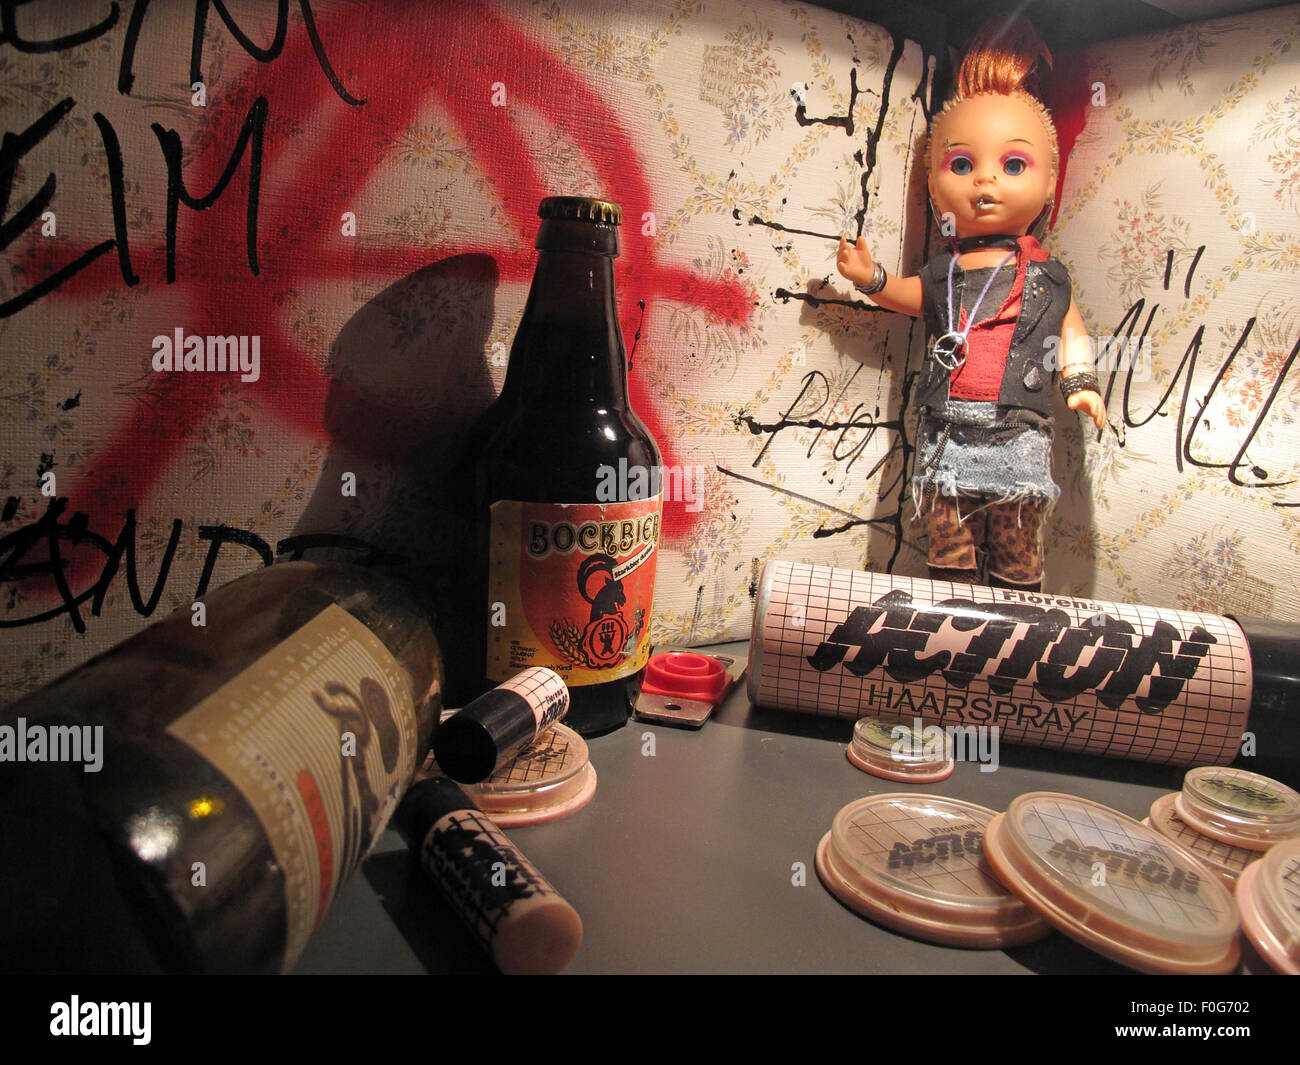 makeup,Germany,democratic,republic,Berlin,beer,graffiti doll,graffiti,doll,hairspray,Action,DDR,hairspray,makeup,Germany,ale,museum,scary,spooky,toy,toys,1970,1970s,punk,GoTonySmith,Buy Pictures of,Buy Images Of